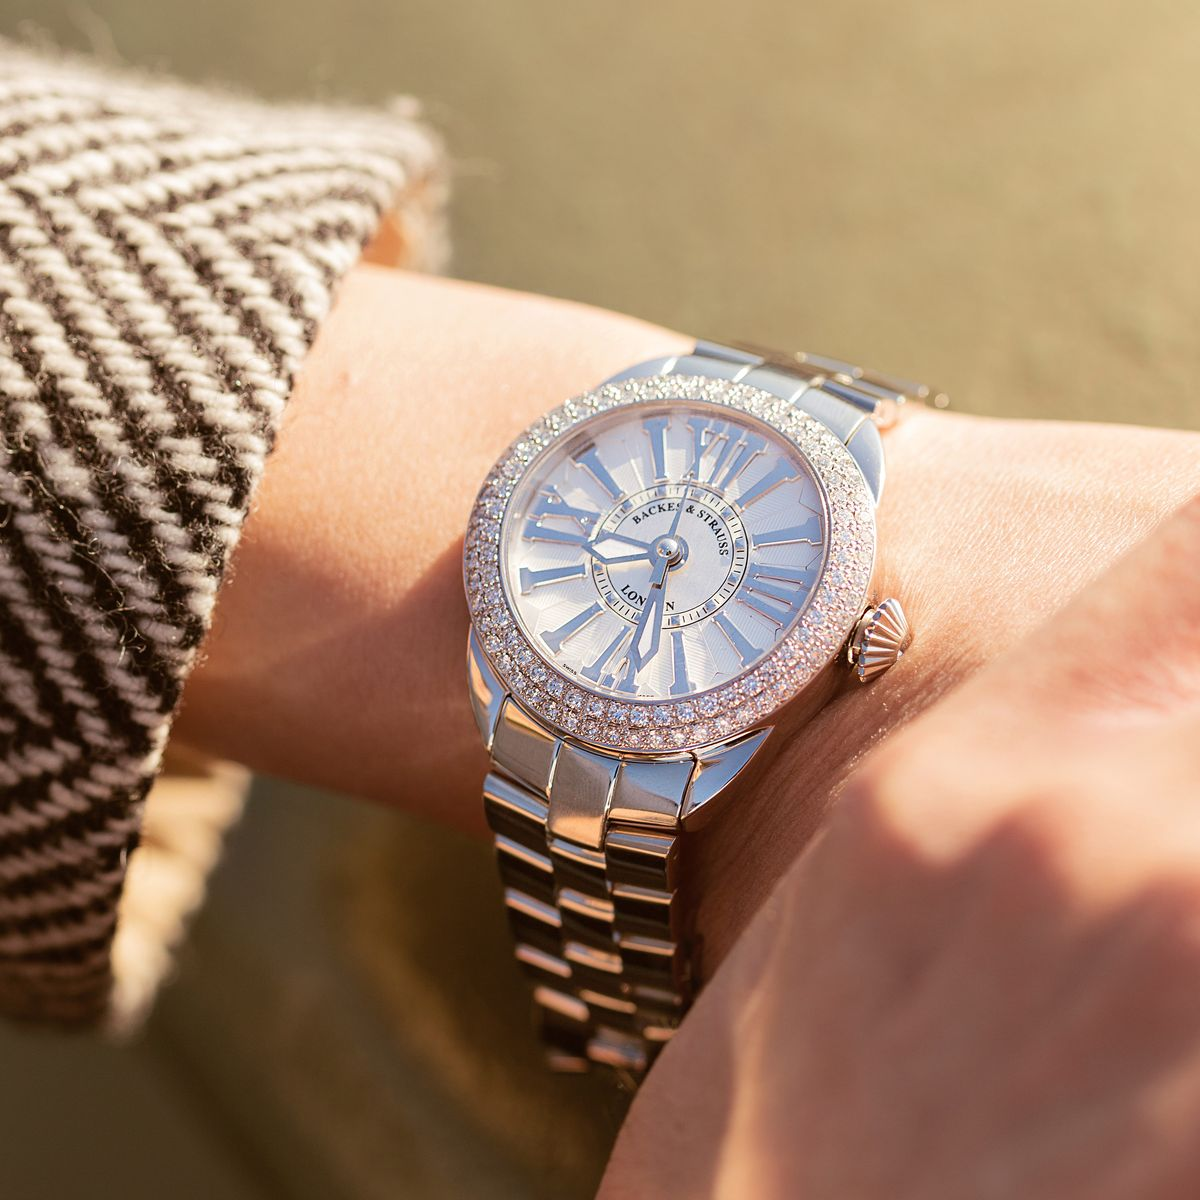 Piccadilly Steel 37 SP Luxury Diamond Watch for Women - 37 mm Stainless Steel - Backes & Strauss